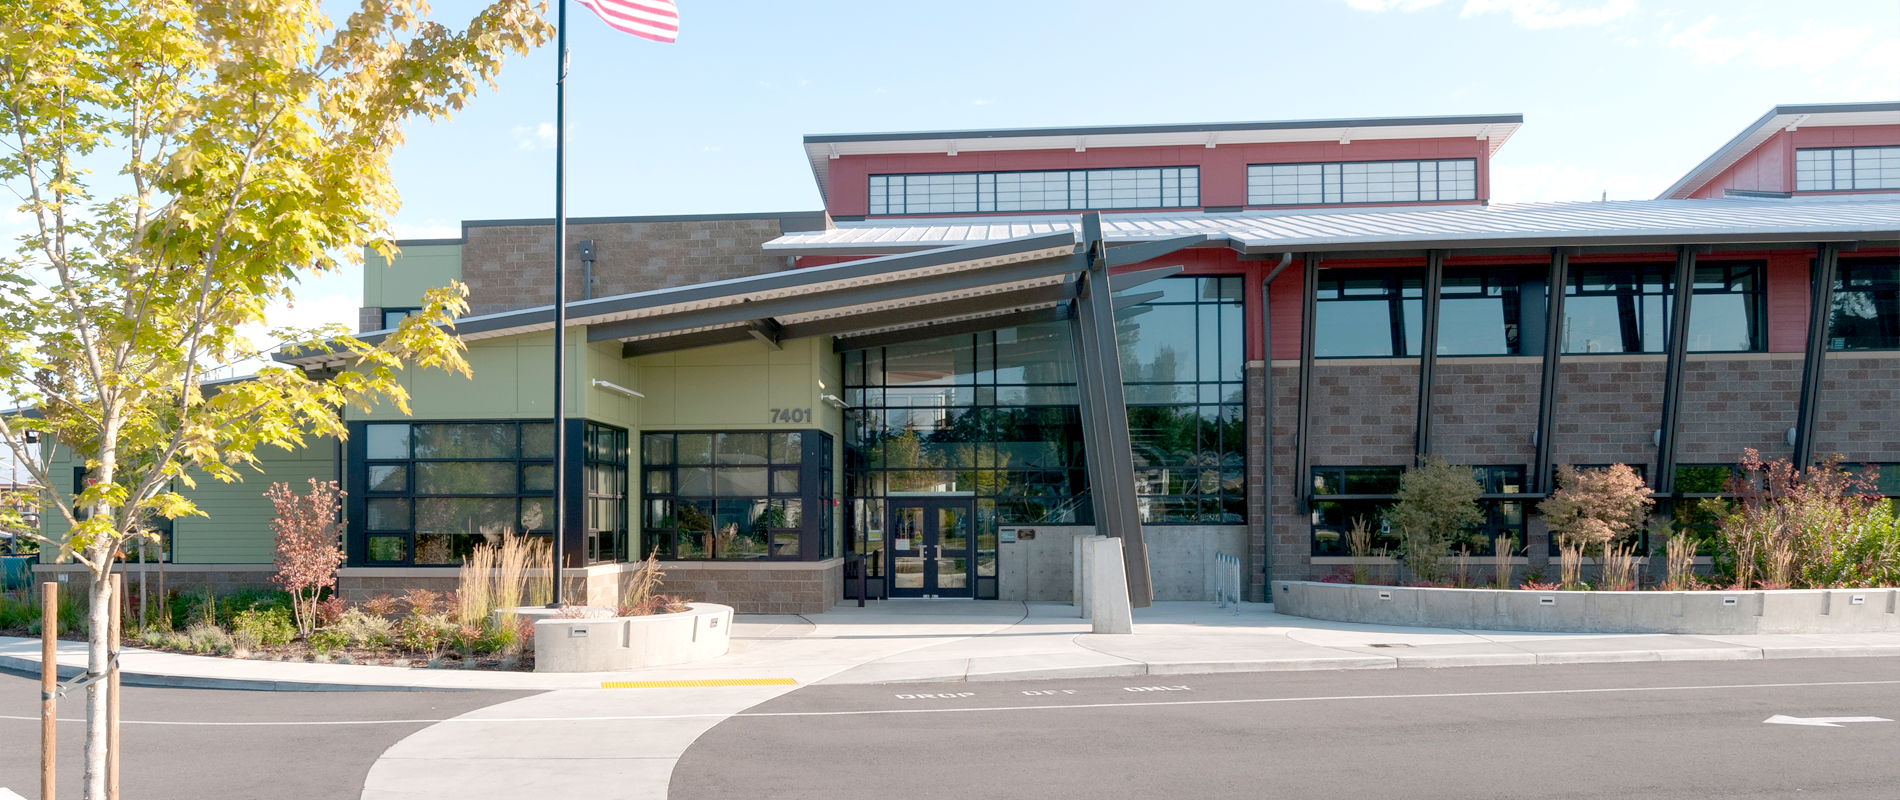 Berschauer Group Quality Construction of Schools in WA Tacoma